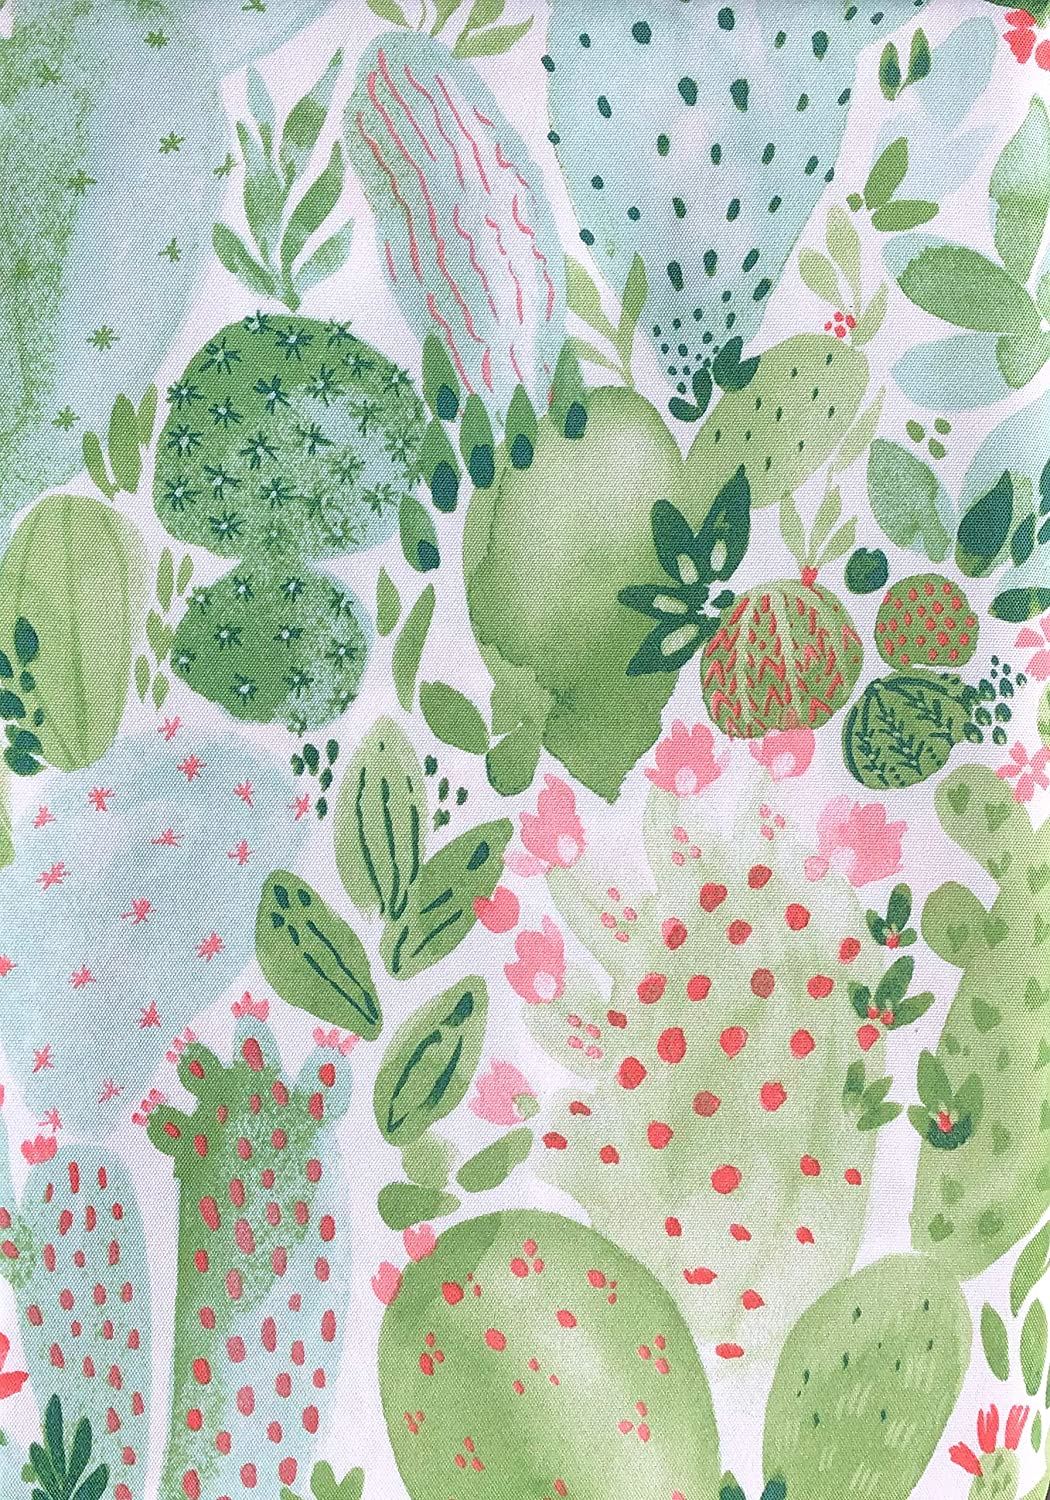 Cynthia Rowley Tablecloth Floral Cactus Pattern in Shades of bluee Green Pink on White Easy Care Indoor Outdoor, Arizona Cactus (60 Inches x 84 Inches)